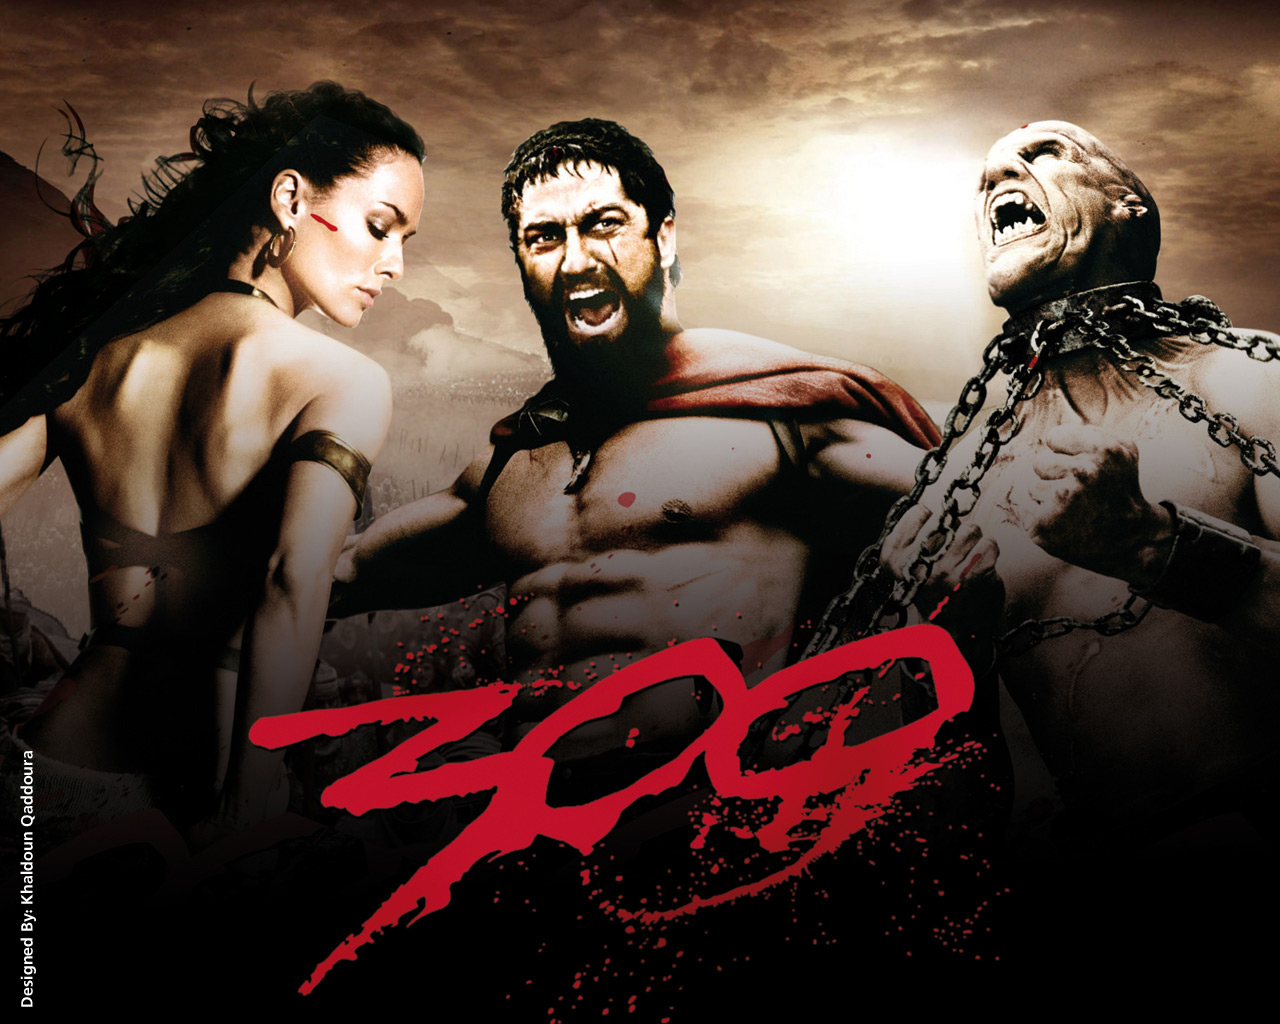 Movie 300 year 2006 genre action fantacy war other wonderful war movie